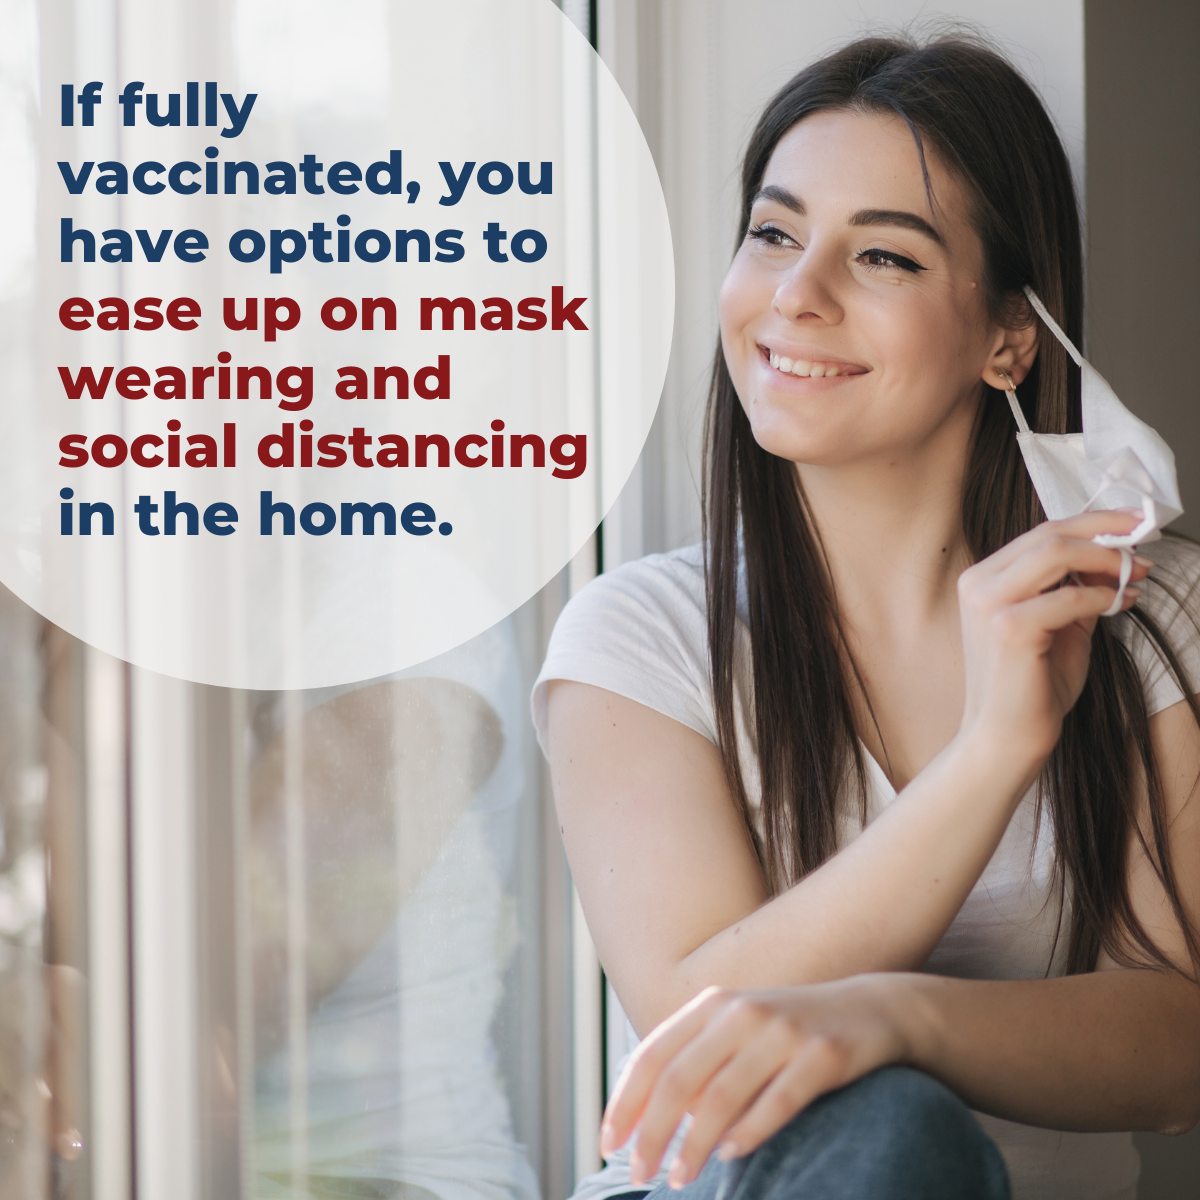 if fully vaccinated, you have options to ease up on mask wearing and social distancing in the home.